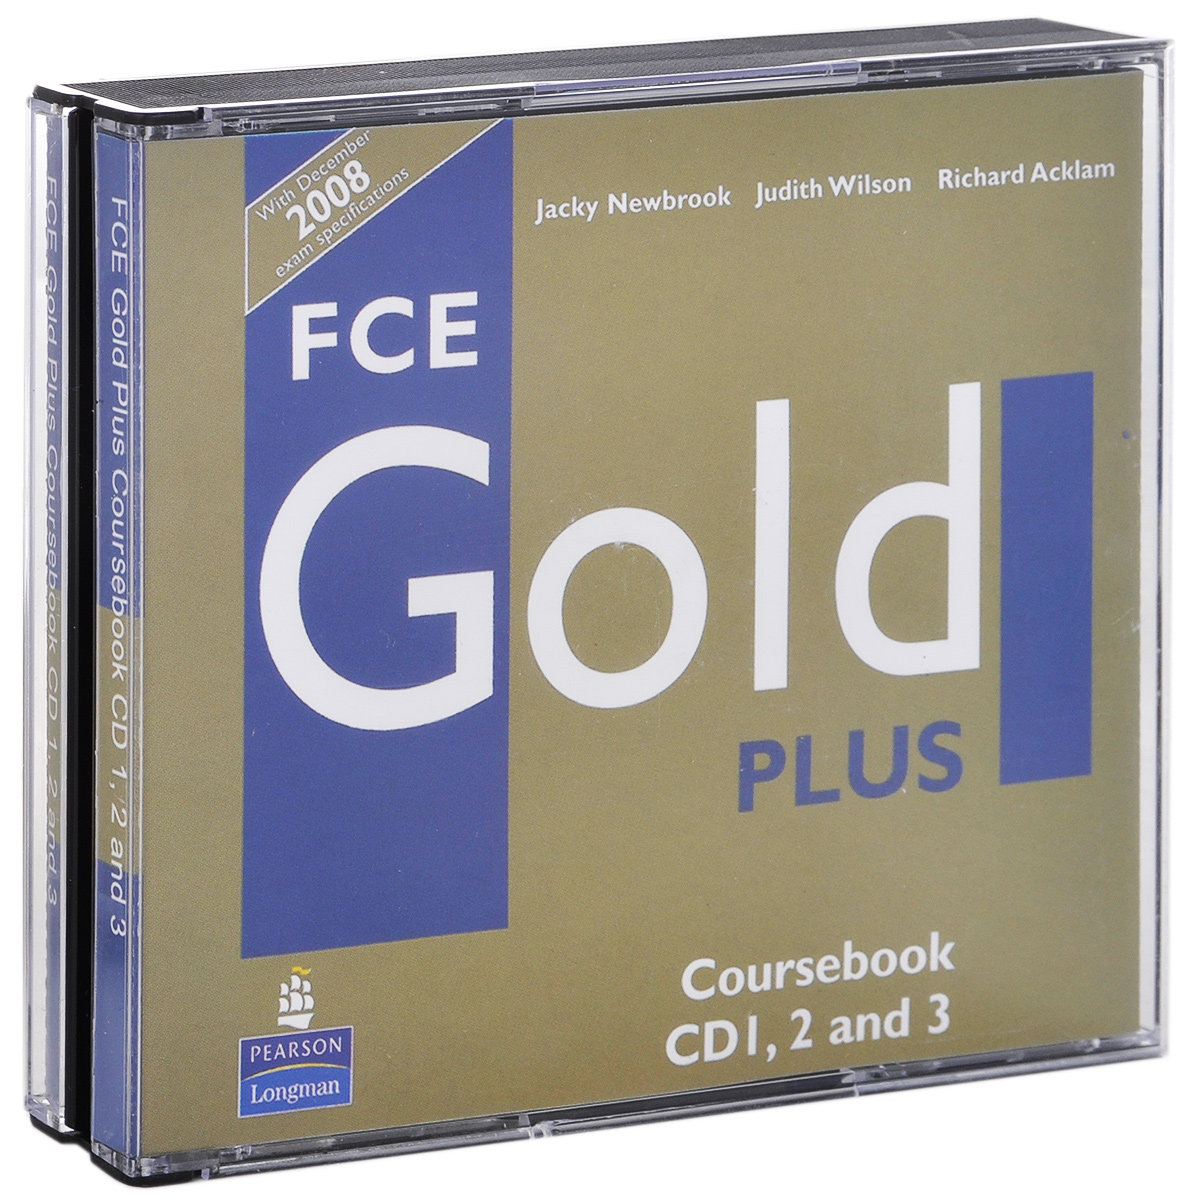 FCE Gold Plus: Coursebook (аудиокурс на 3 CD) ledron strong gold